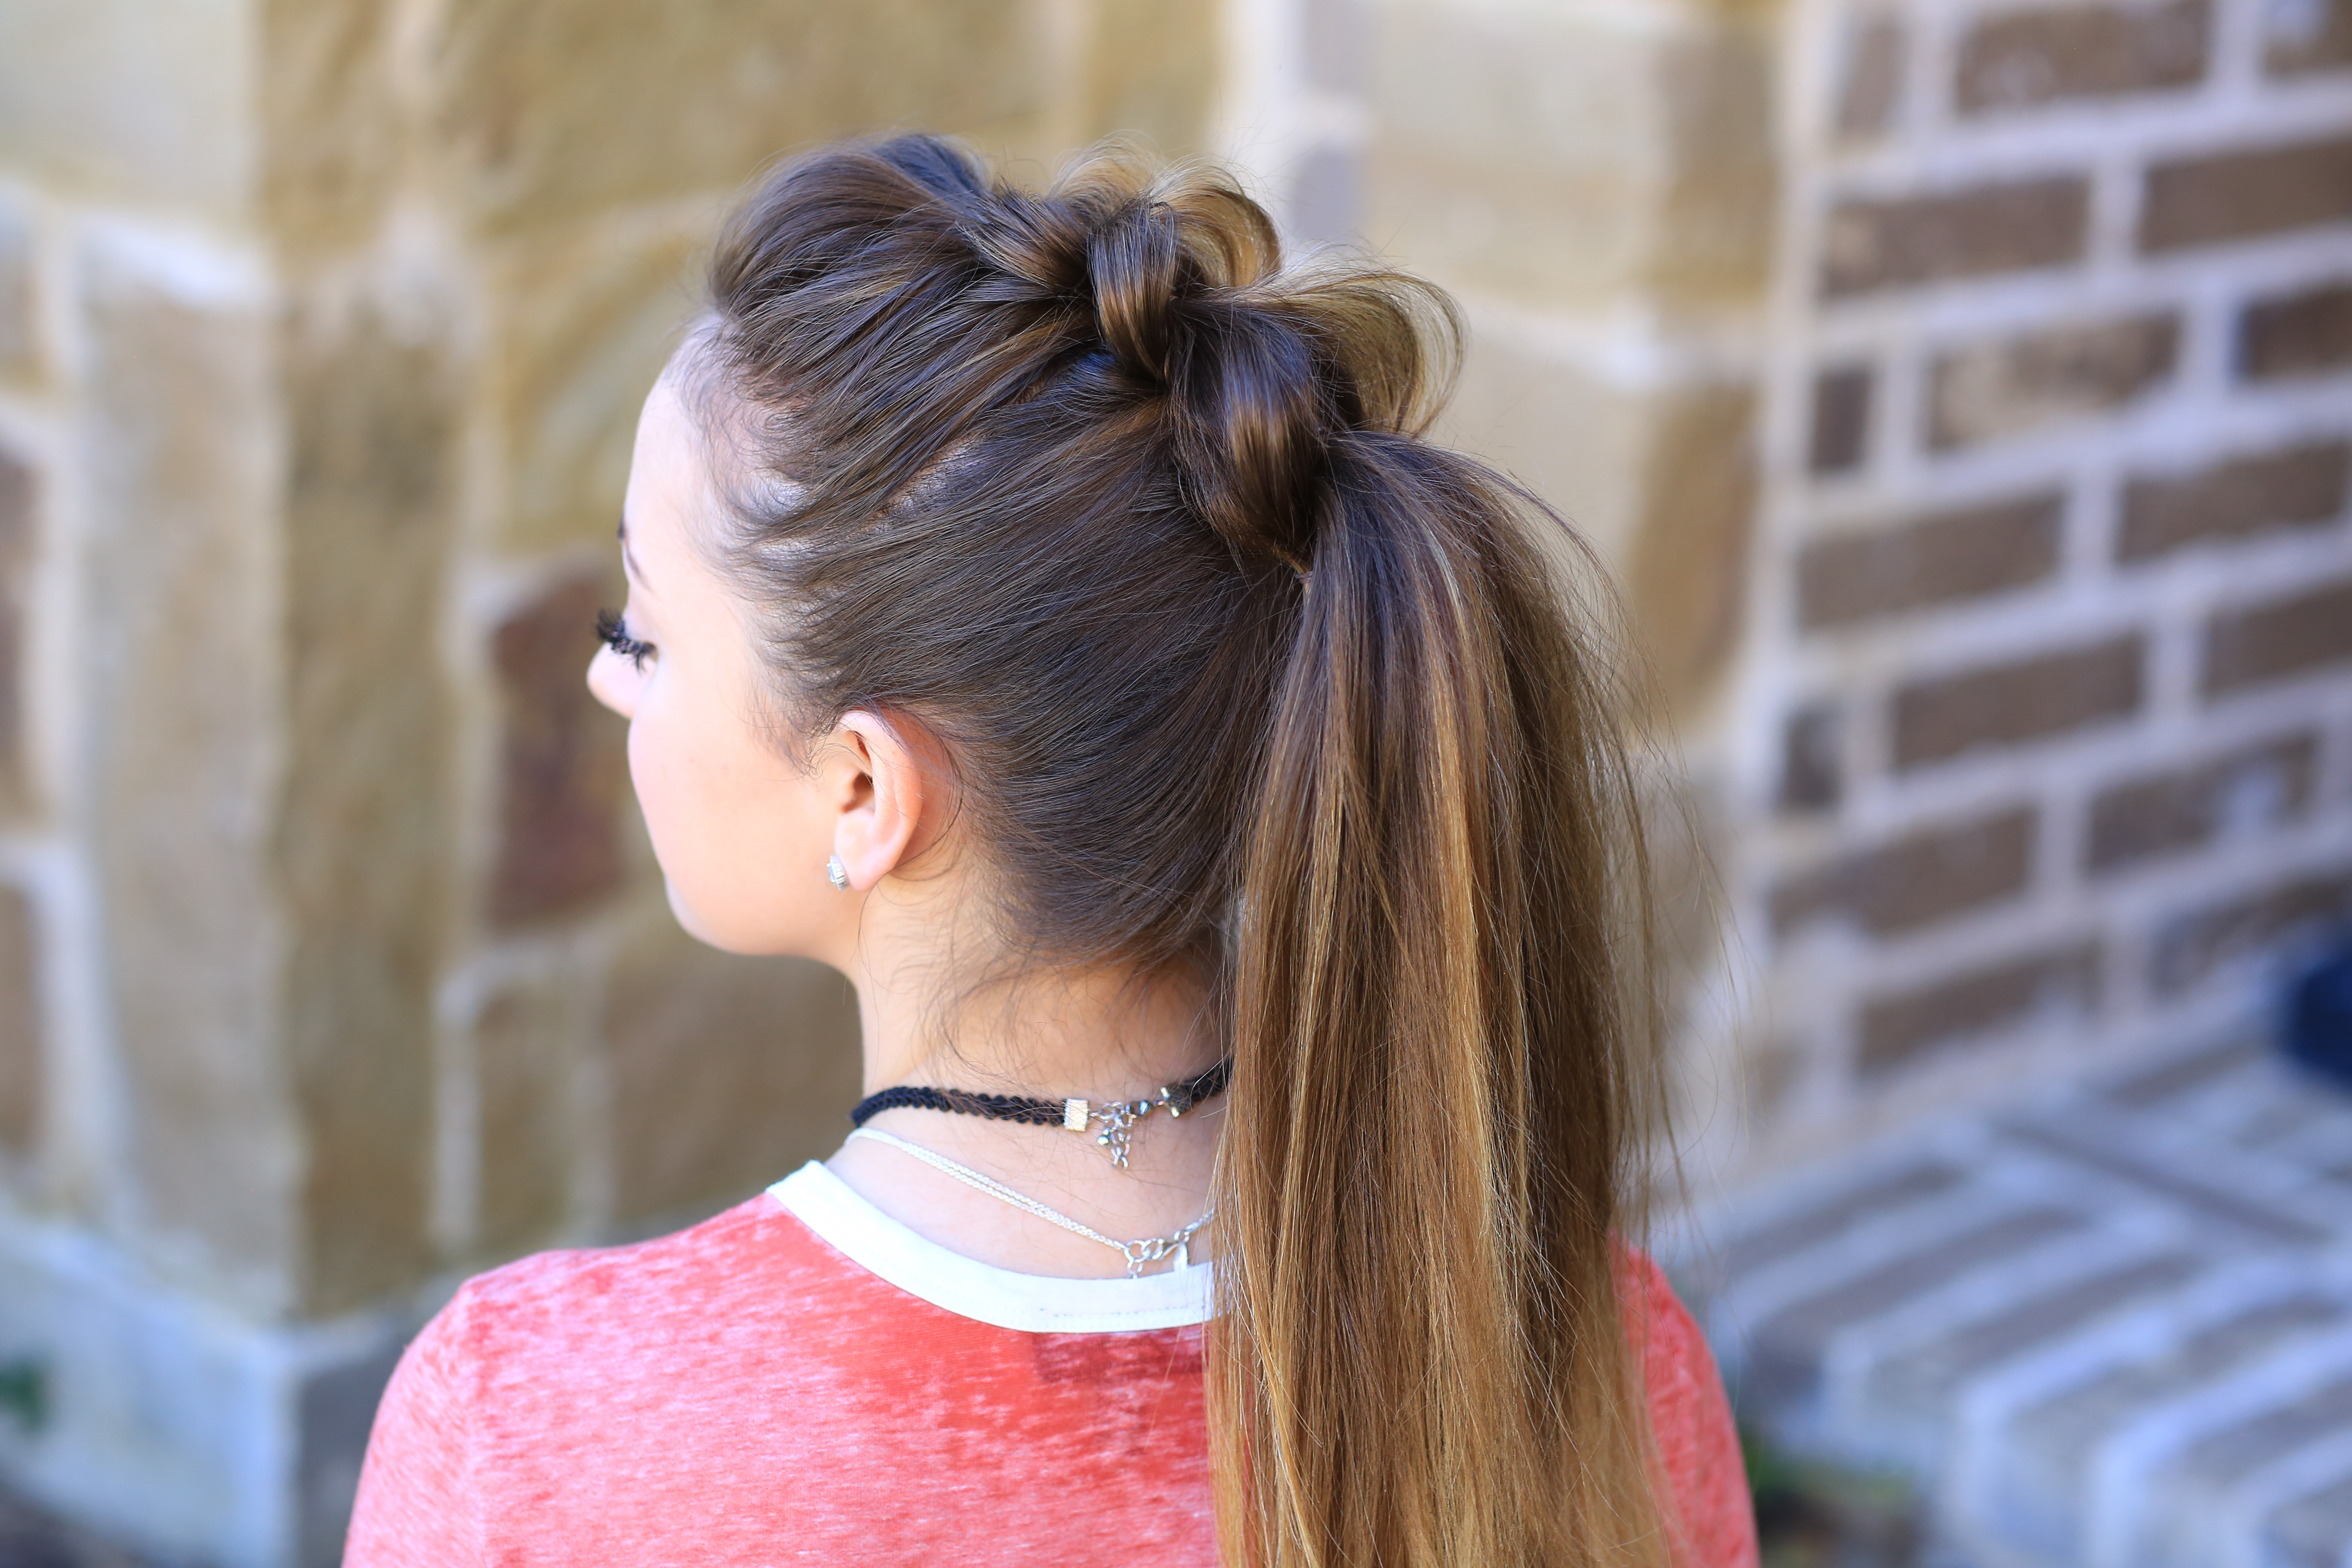 Modern Hairstyles For Girls 2018